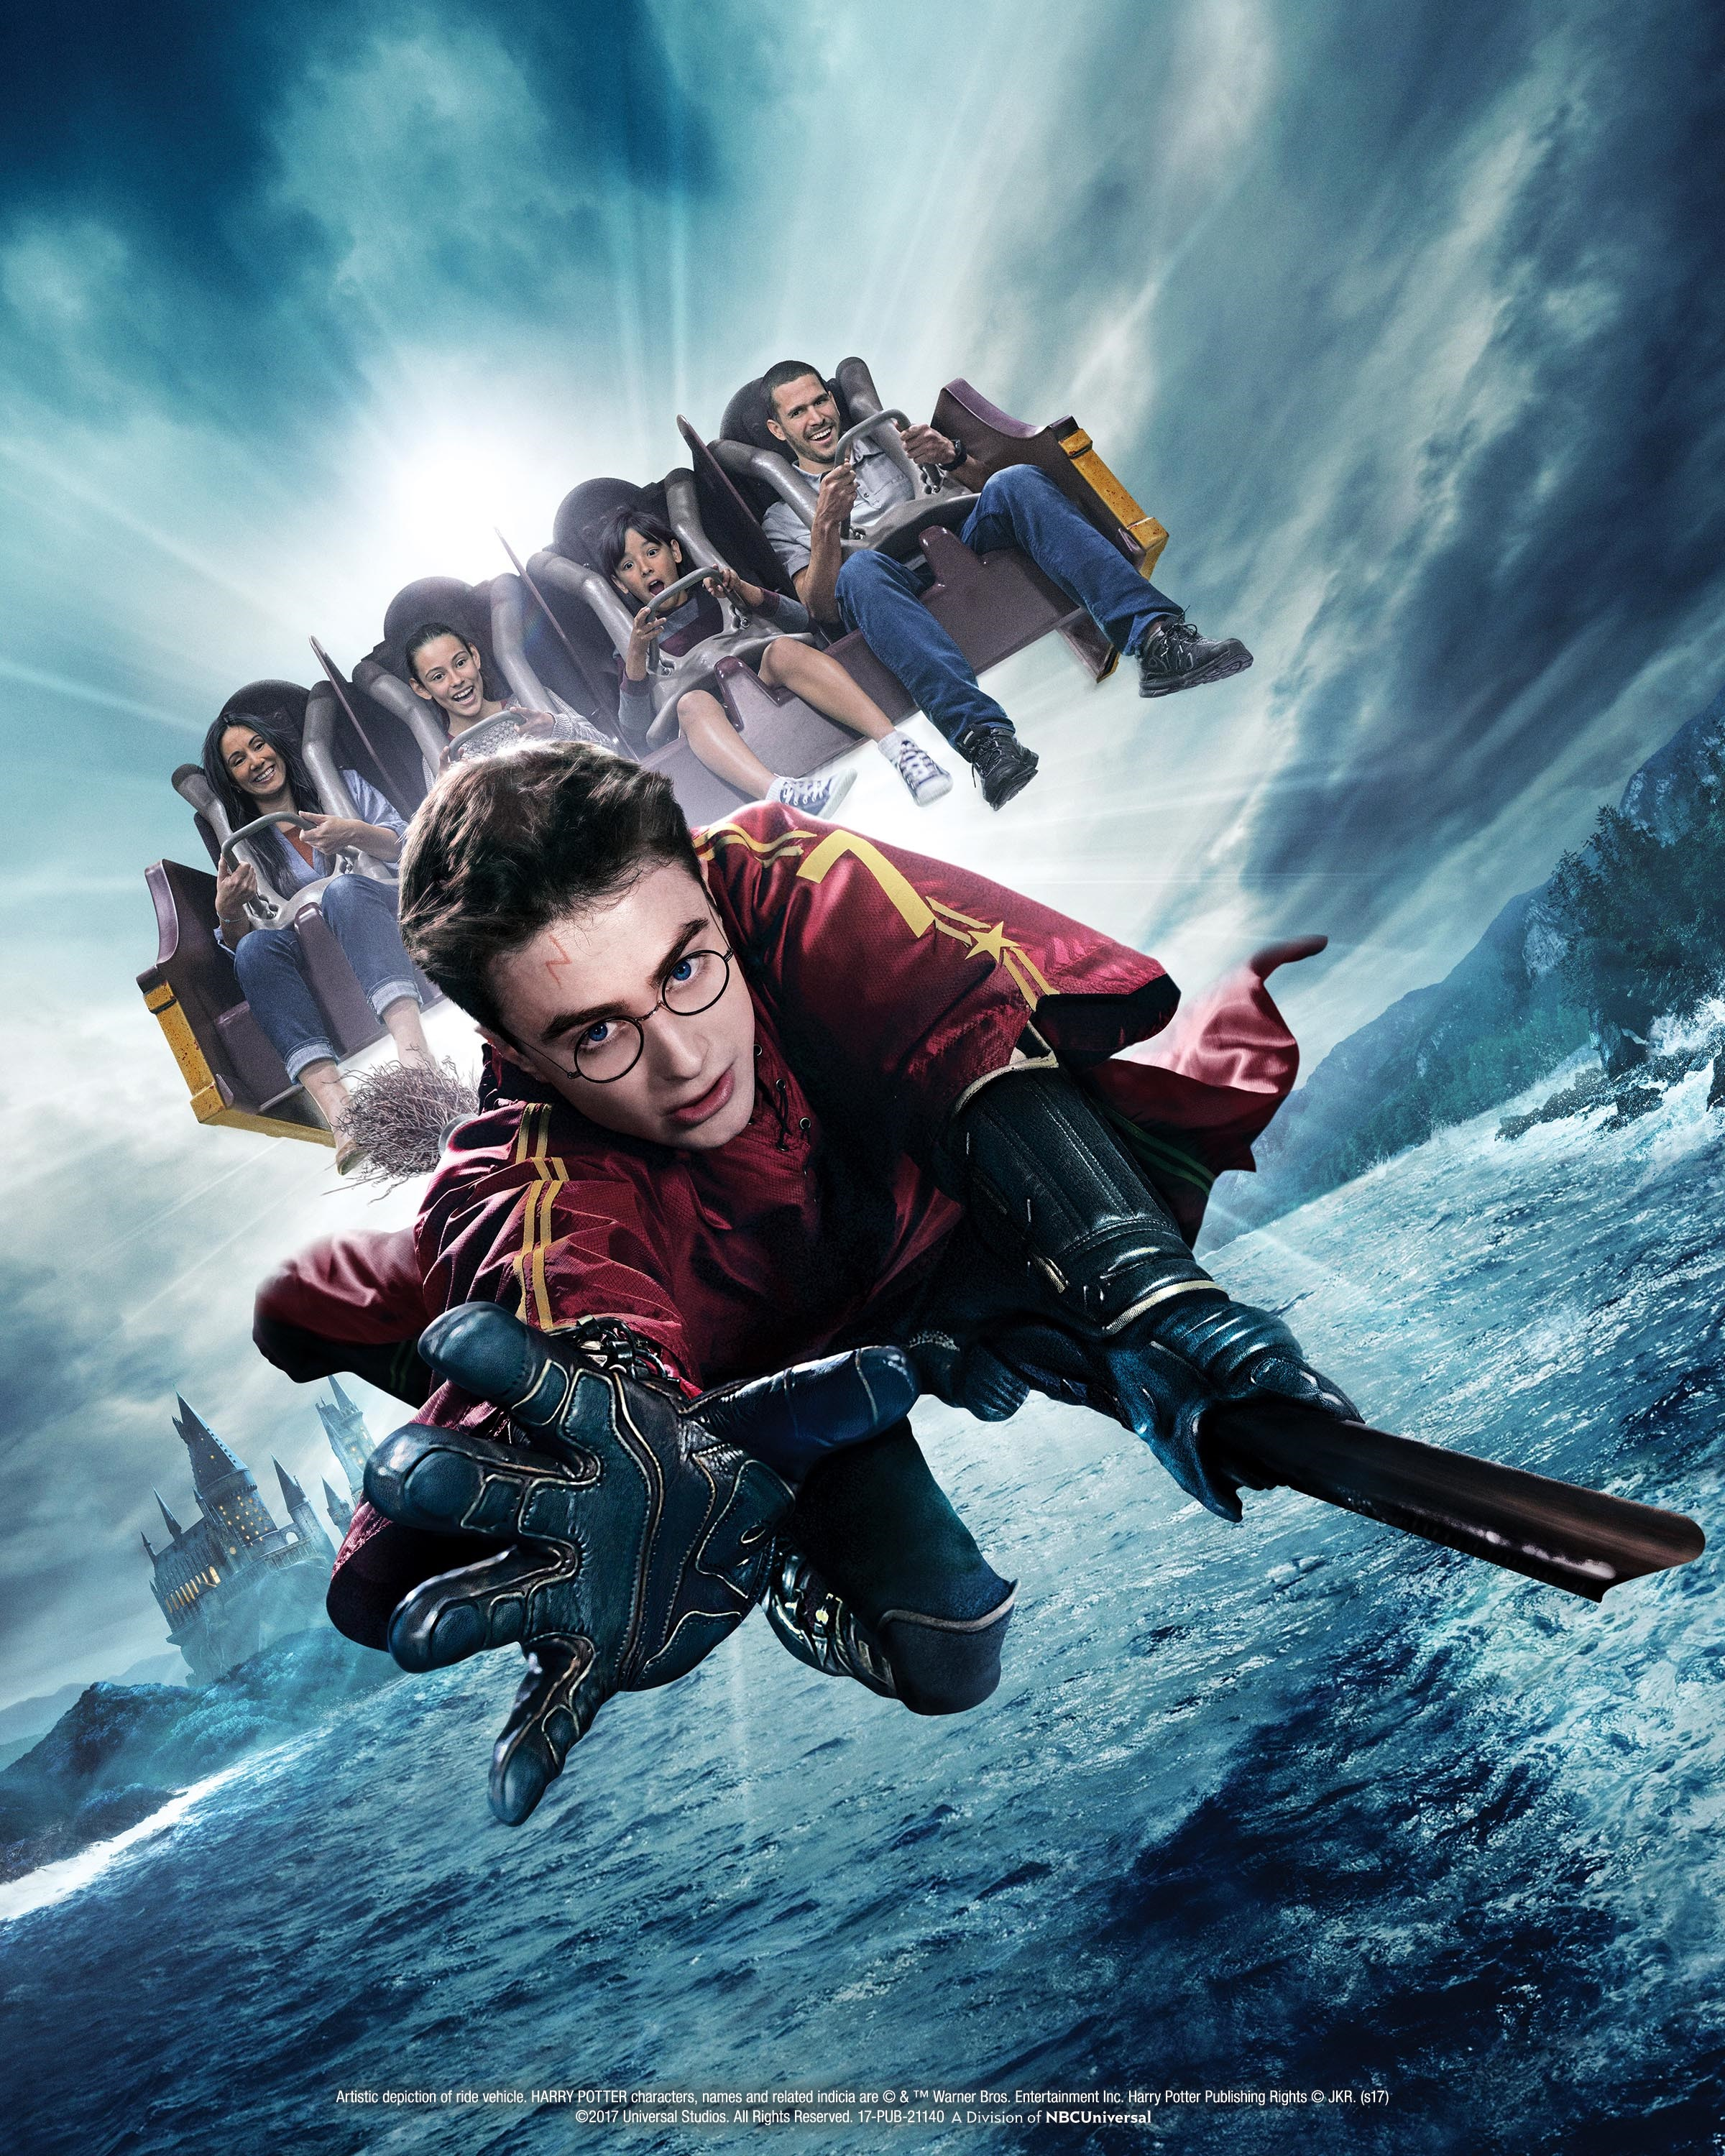 """""""Harry Potter and the Forbidden Journey"""" thrill ride located within Hogwarts castle at """"The Wizarding World of Harry Potter"""" at Universal Studios Hollywood"""